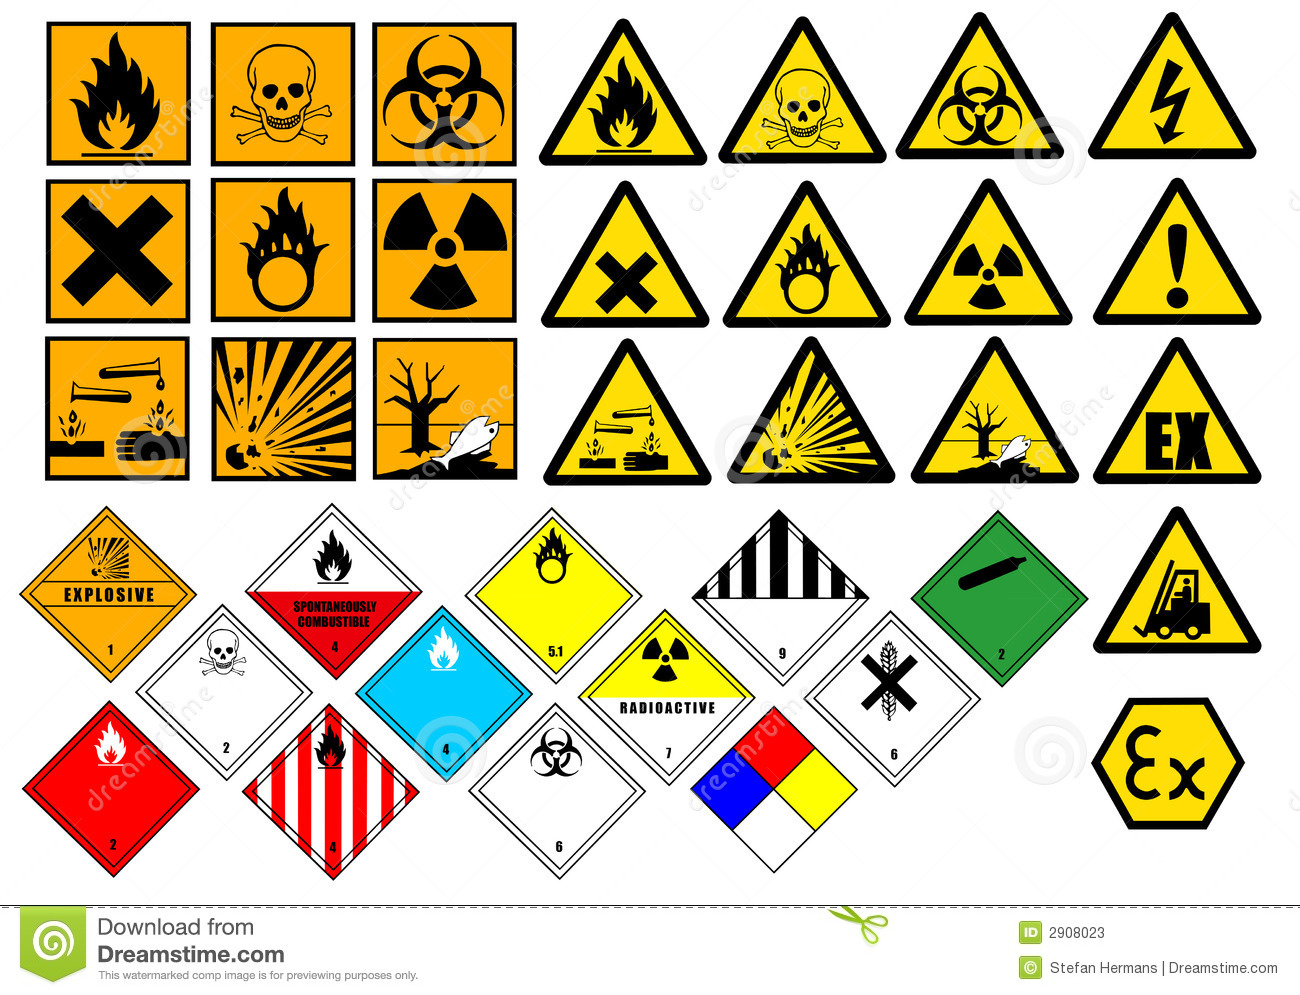 Stock Photos Chemical Symbols Image2908023 on fire safety plan symbols